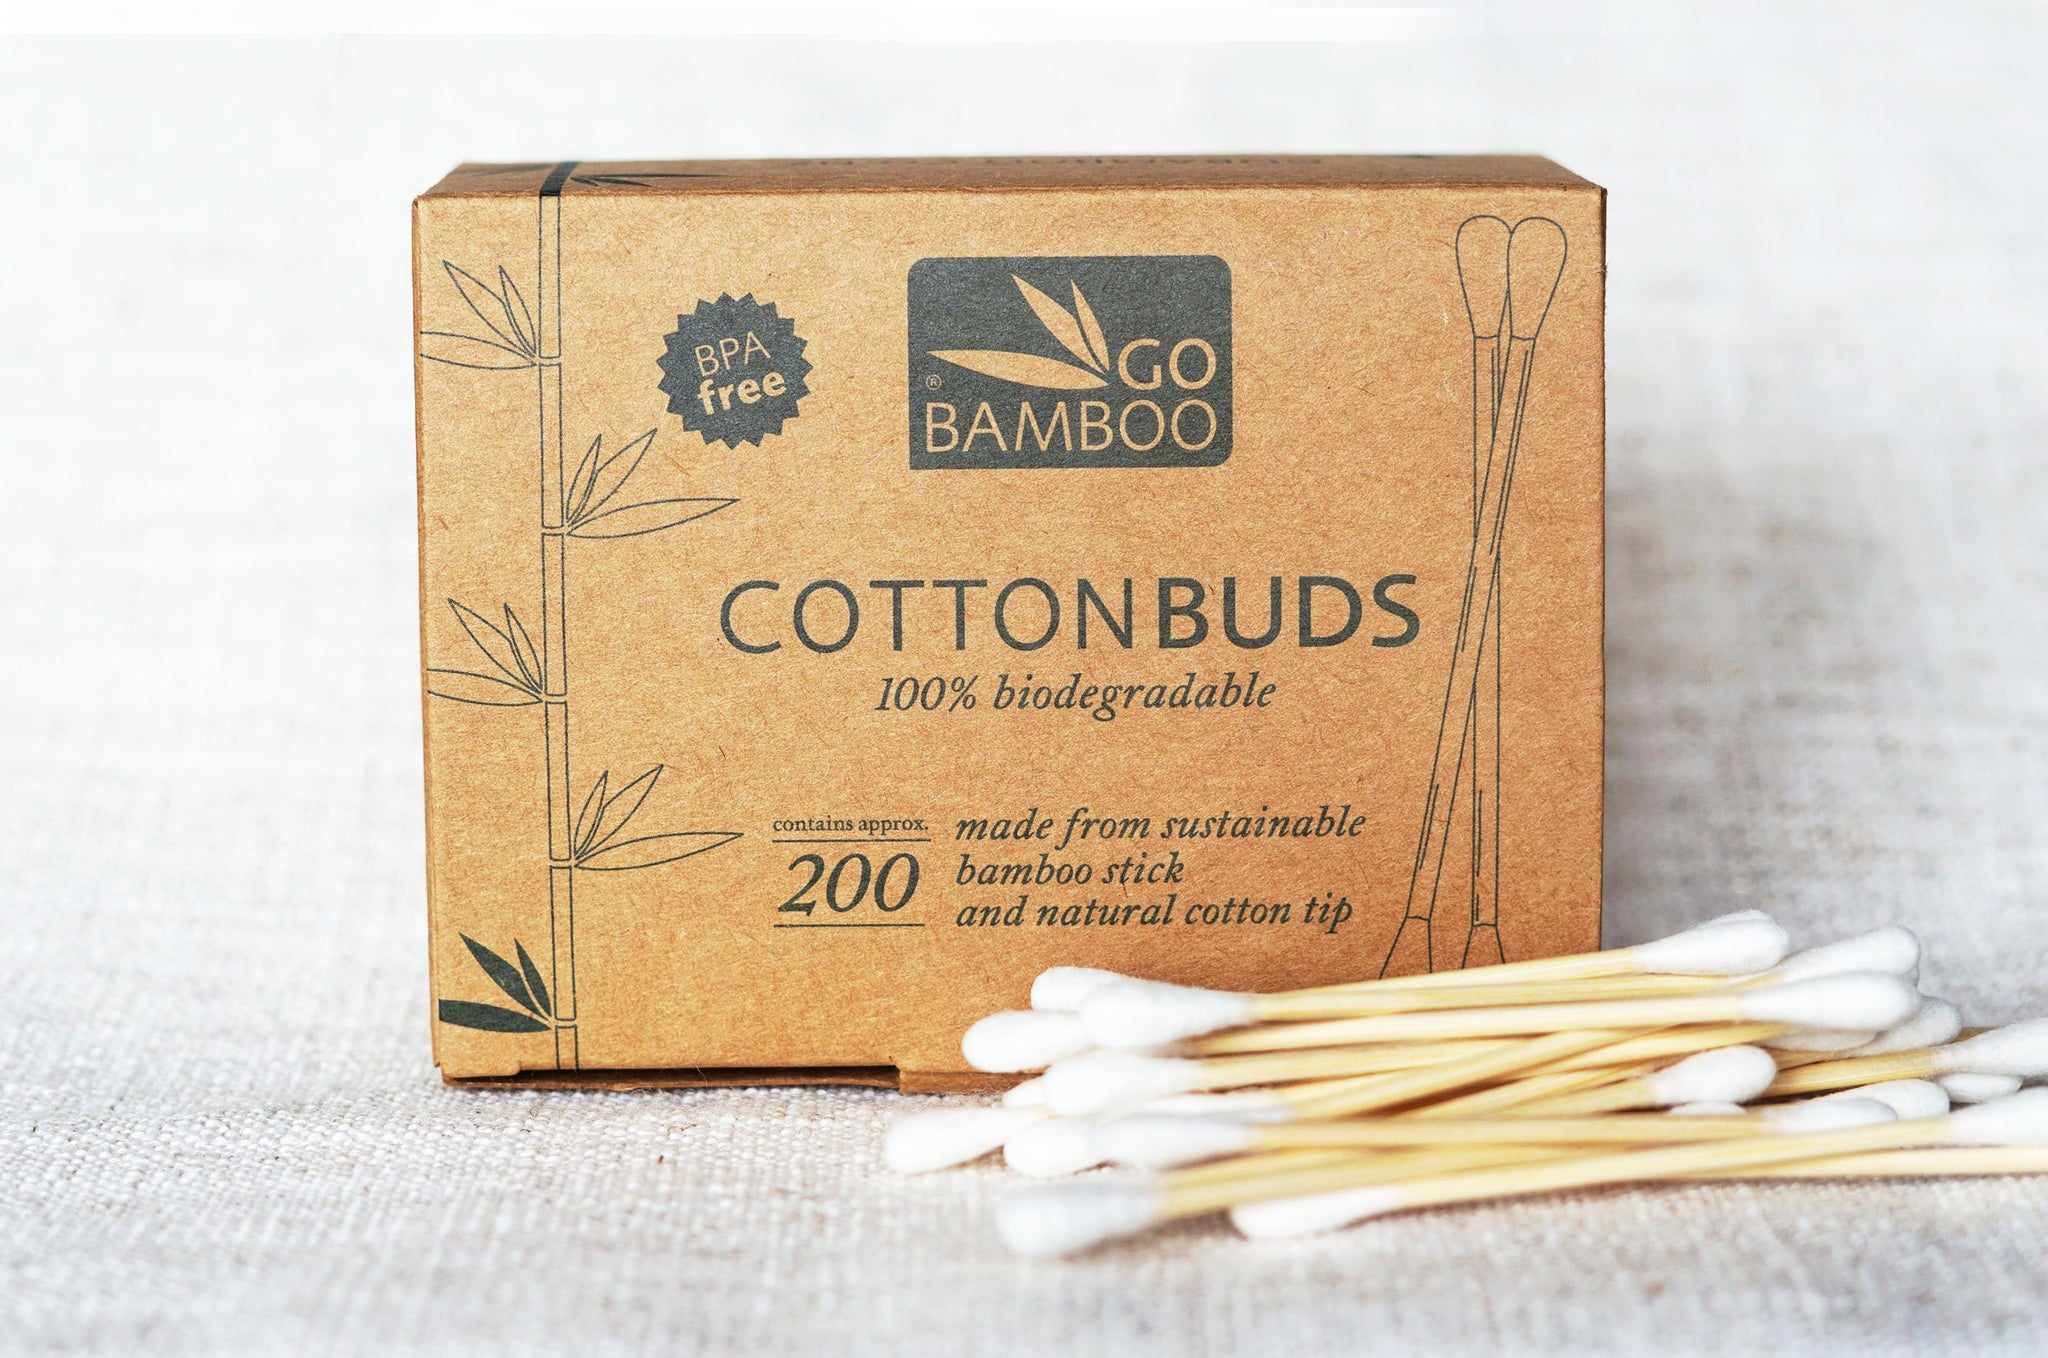 Bamboo Cotton Buds - Biodegradable